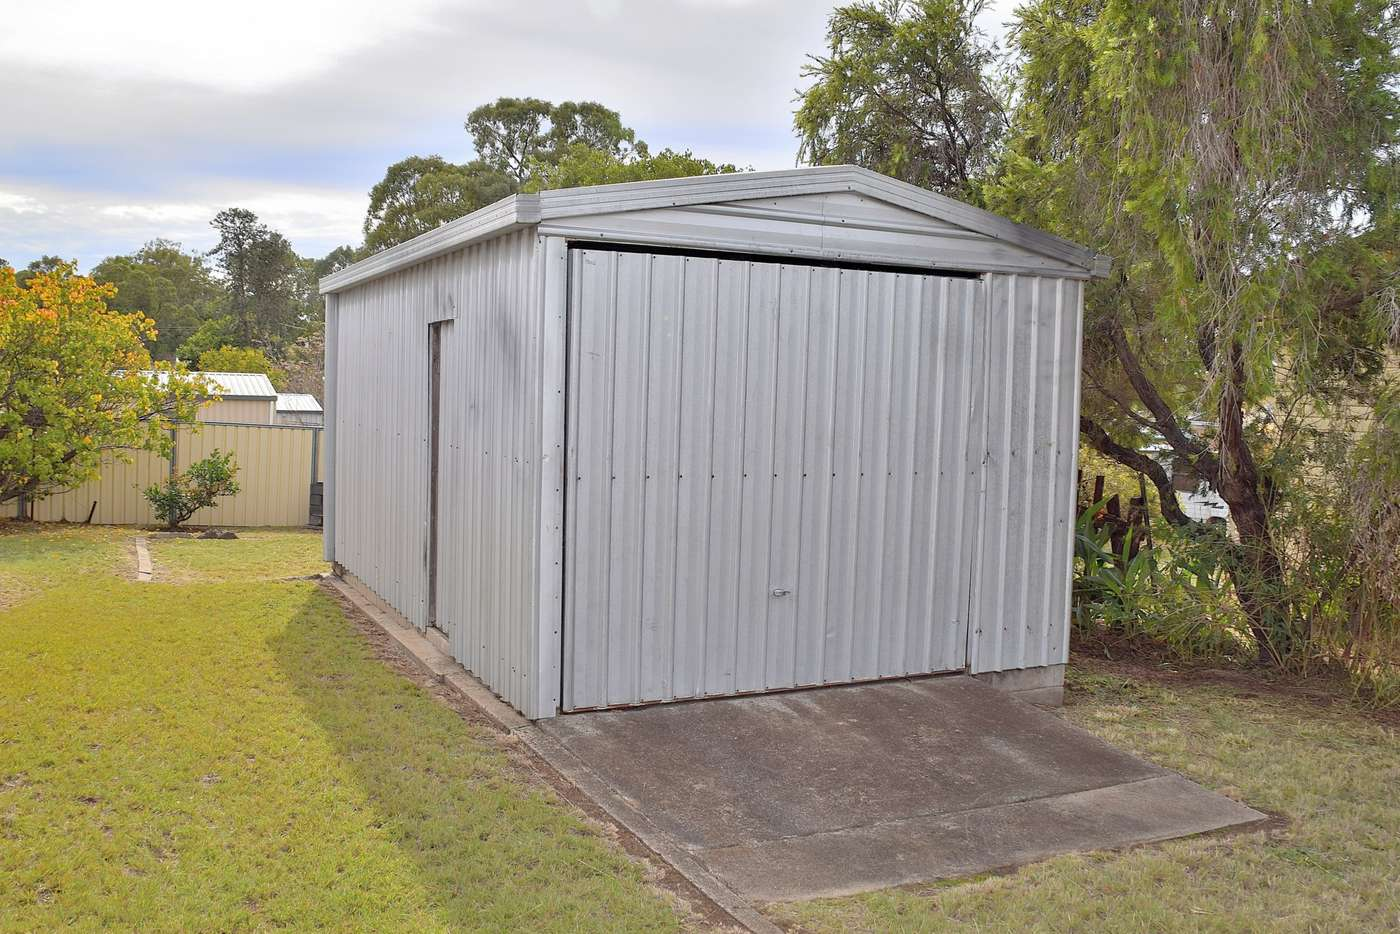 Seventh view of Homely house listing, 21 Baguley Street, Warwick QLD 4370